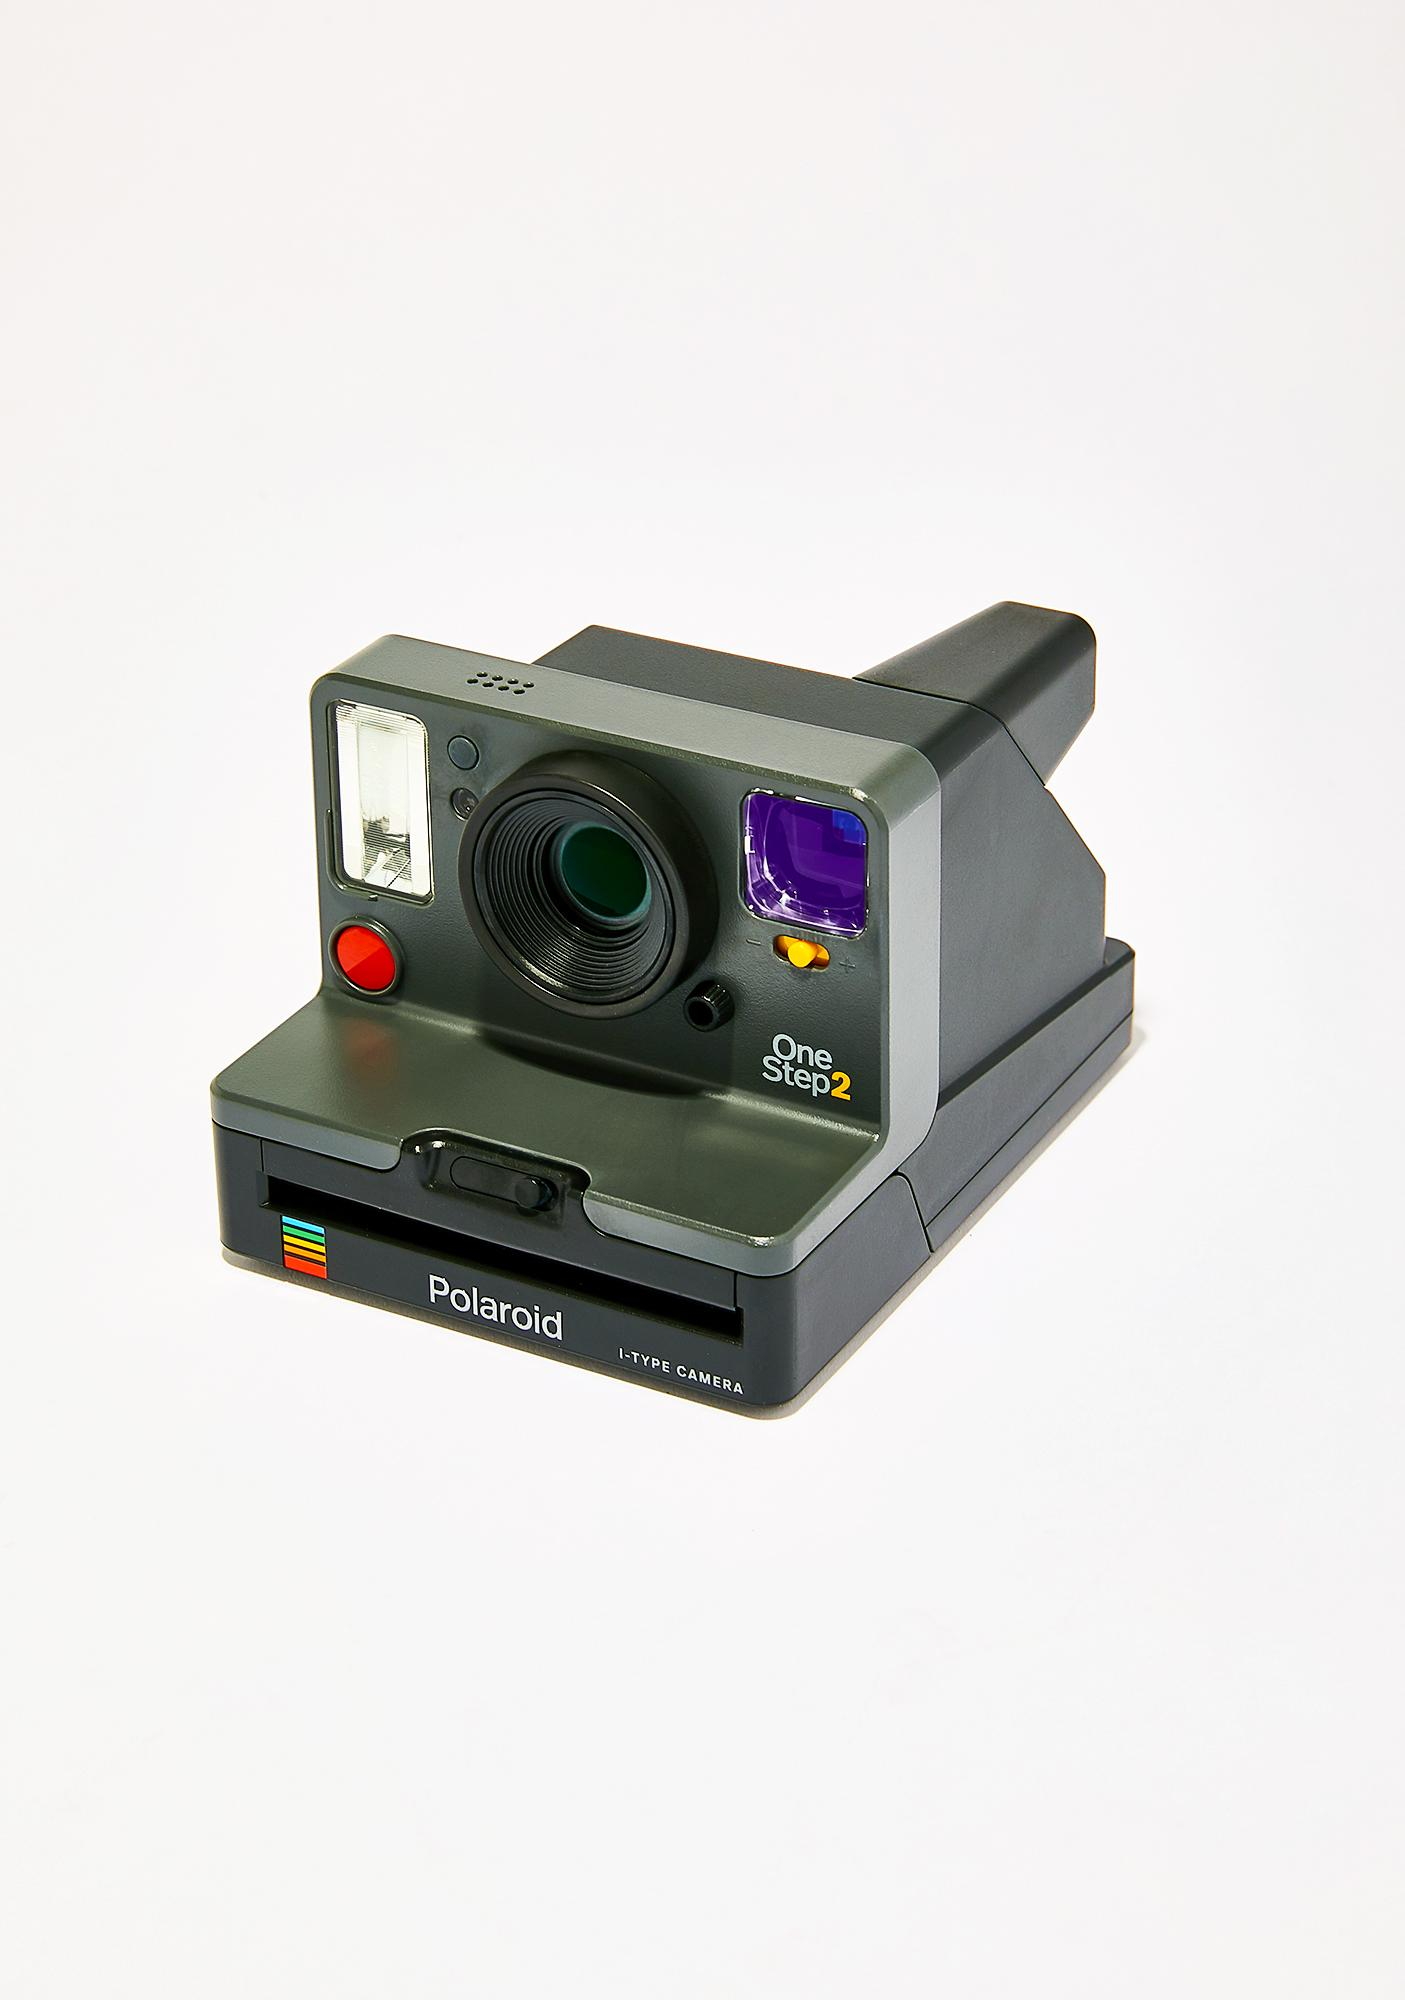 The Impossible Project OneStep 2 Polaroid Camera